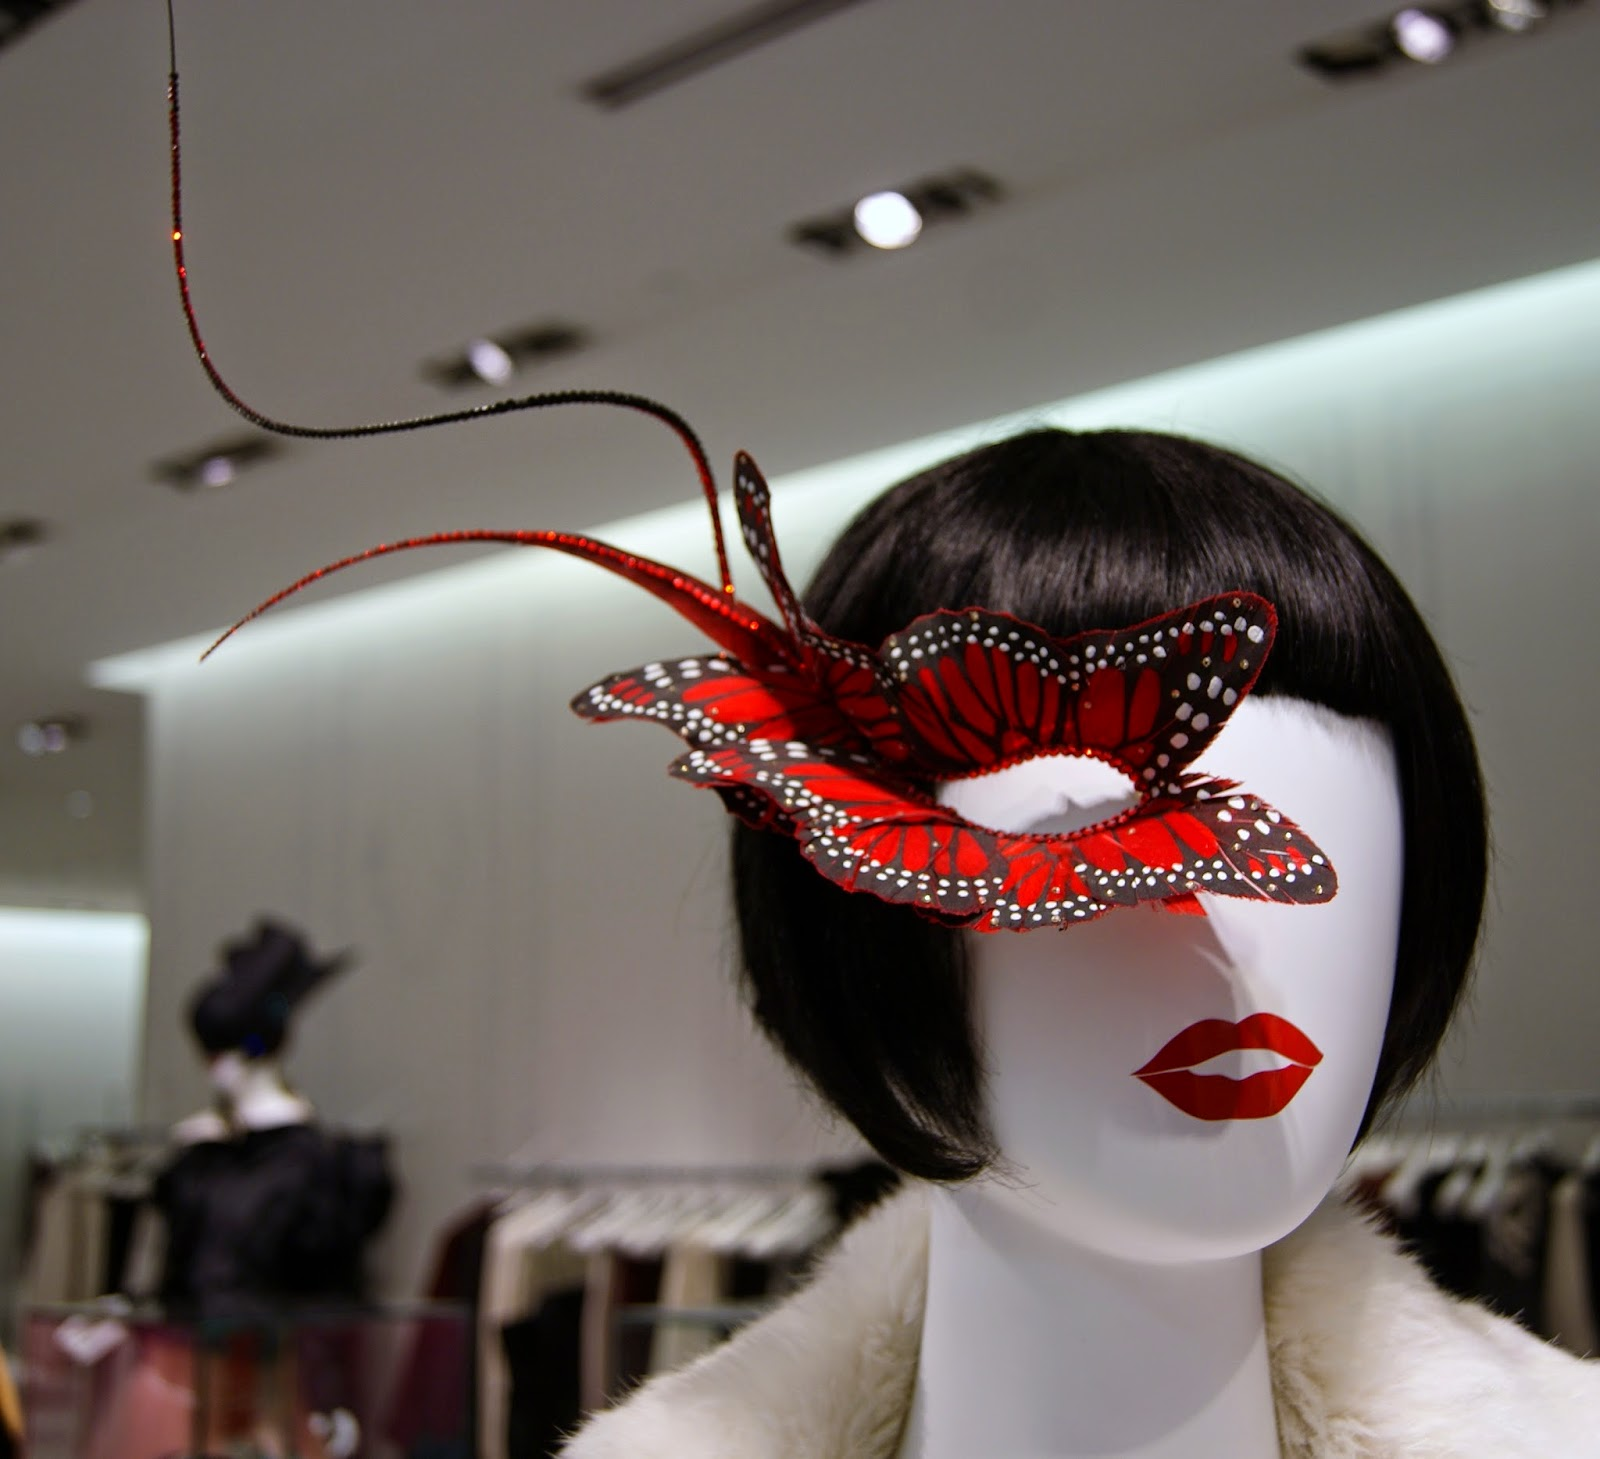 Fashion Blows Exhibit at Hudson's Bay in Toronto, Isabella, Daupne Guinness, Style, Culture, foundation, alexander mcqueen, philip treacy, suicide,the purple scarf, melanie.ps, ontario, canada, the room, red butterfly mask, 2006